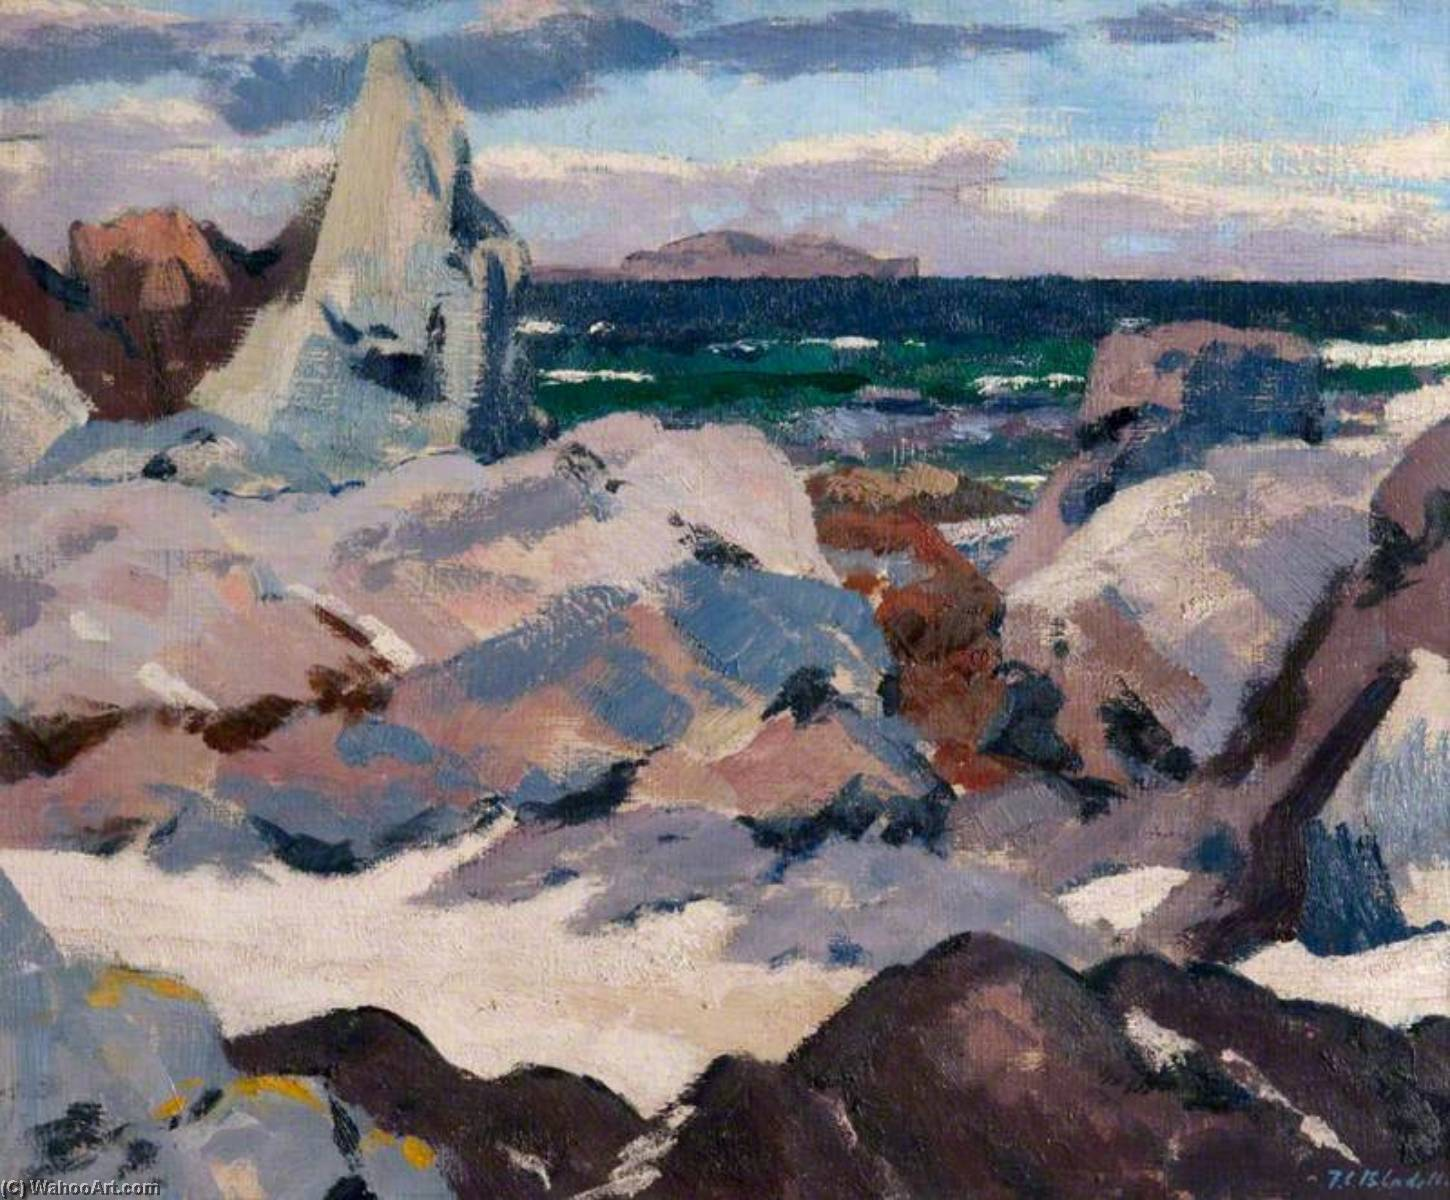 Lunga from Iona, 1928 by Francis Campbell Boileau Cadell (1883-1937) | Art Reproduction | WahooArt.com